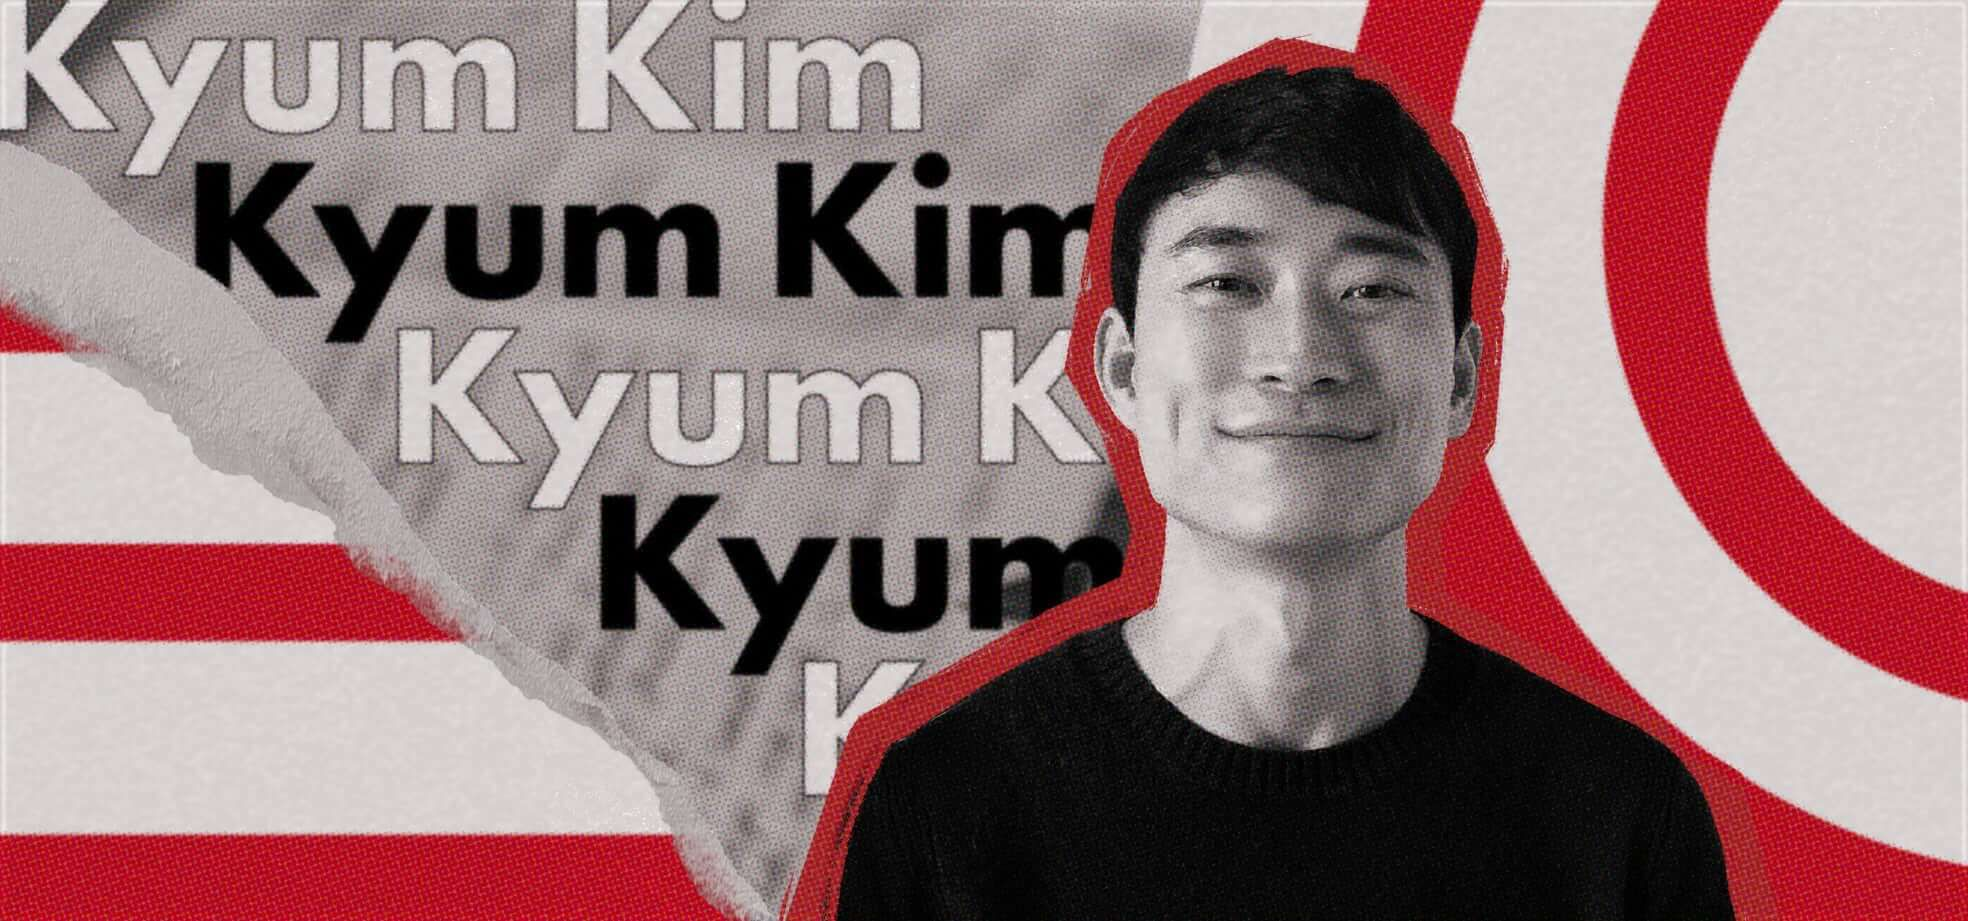 Blind co-founder Kyum Kim on the hidden power of anonymity